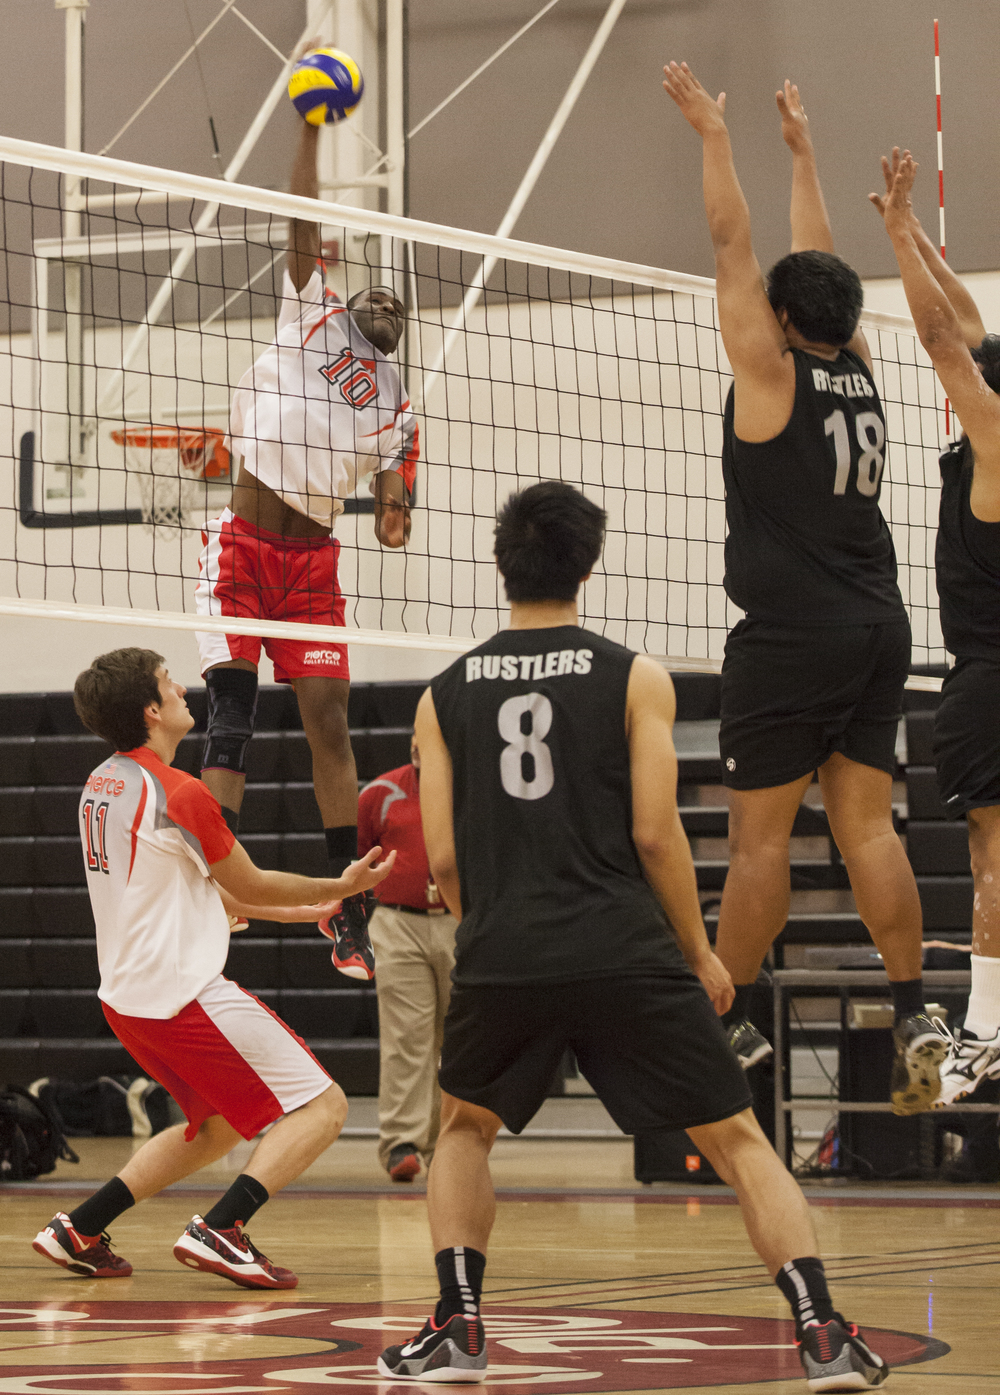 Corey Pitt spikes the ball against two Golden West defenders during a match against Golden West College on Wednesday Feb. 18. Pierce would go on to win the match in straight sets, 3-0. Woodland Hills, Calif.   Full story